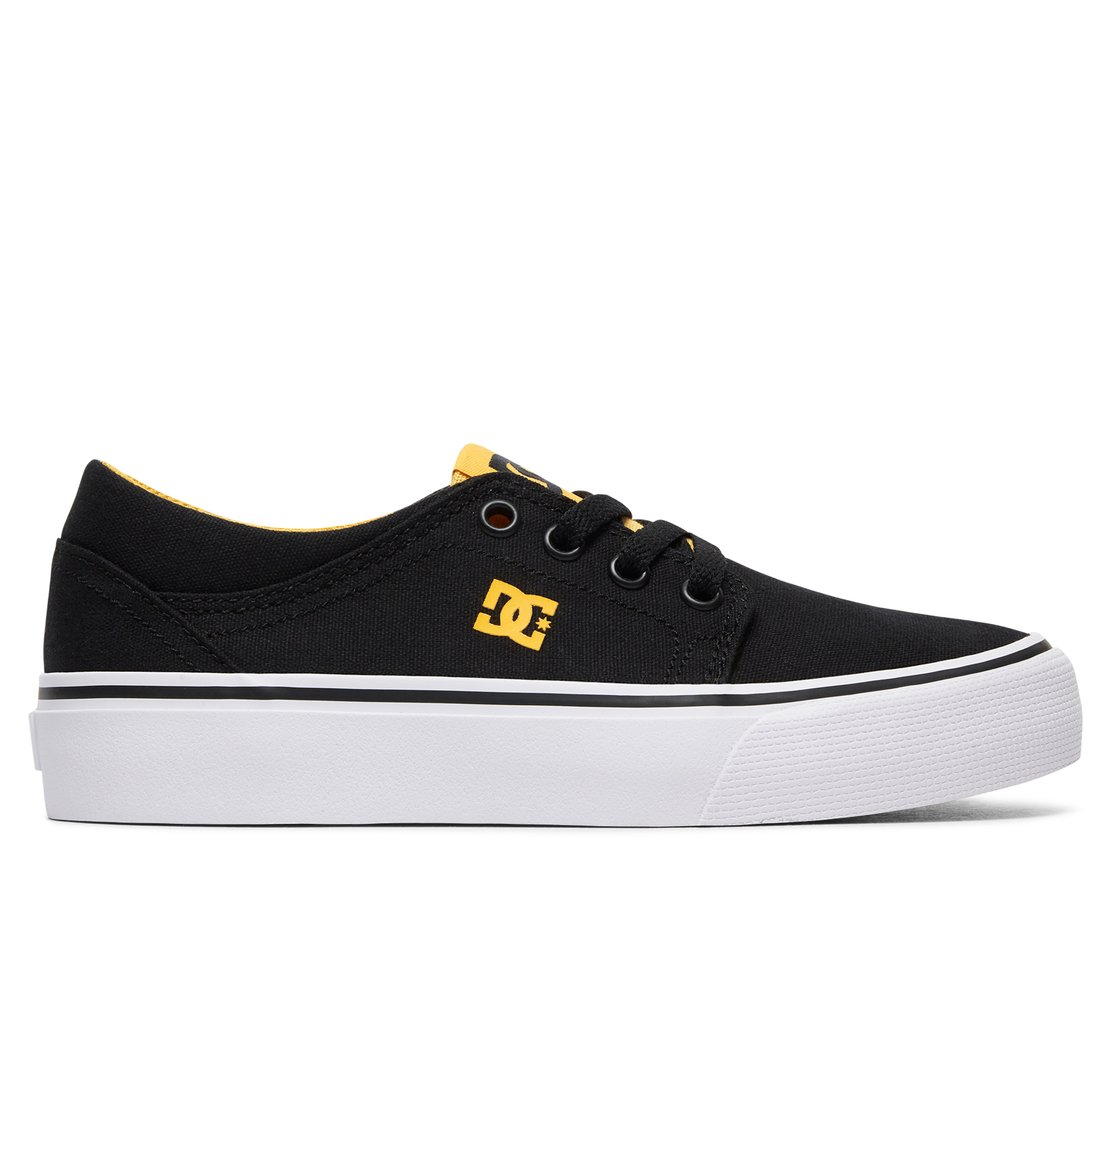 Black And Yellow Shoes For Men